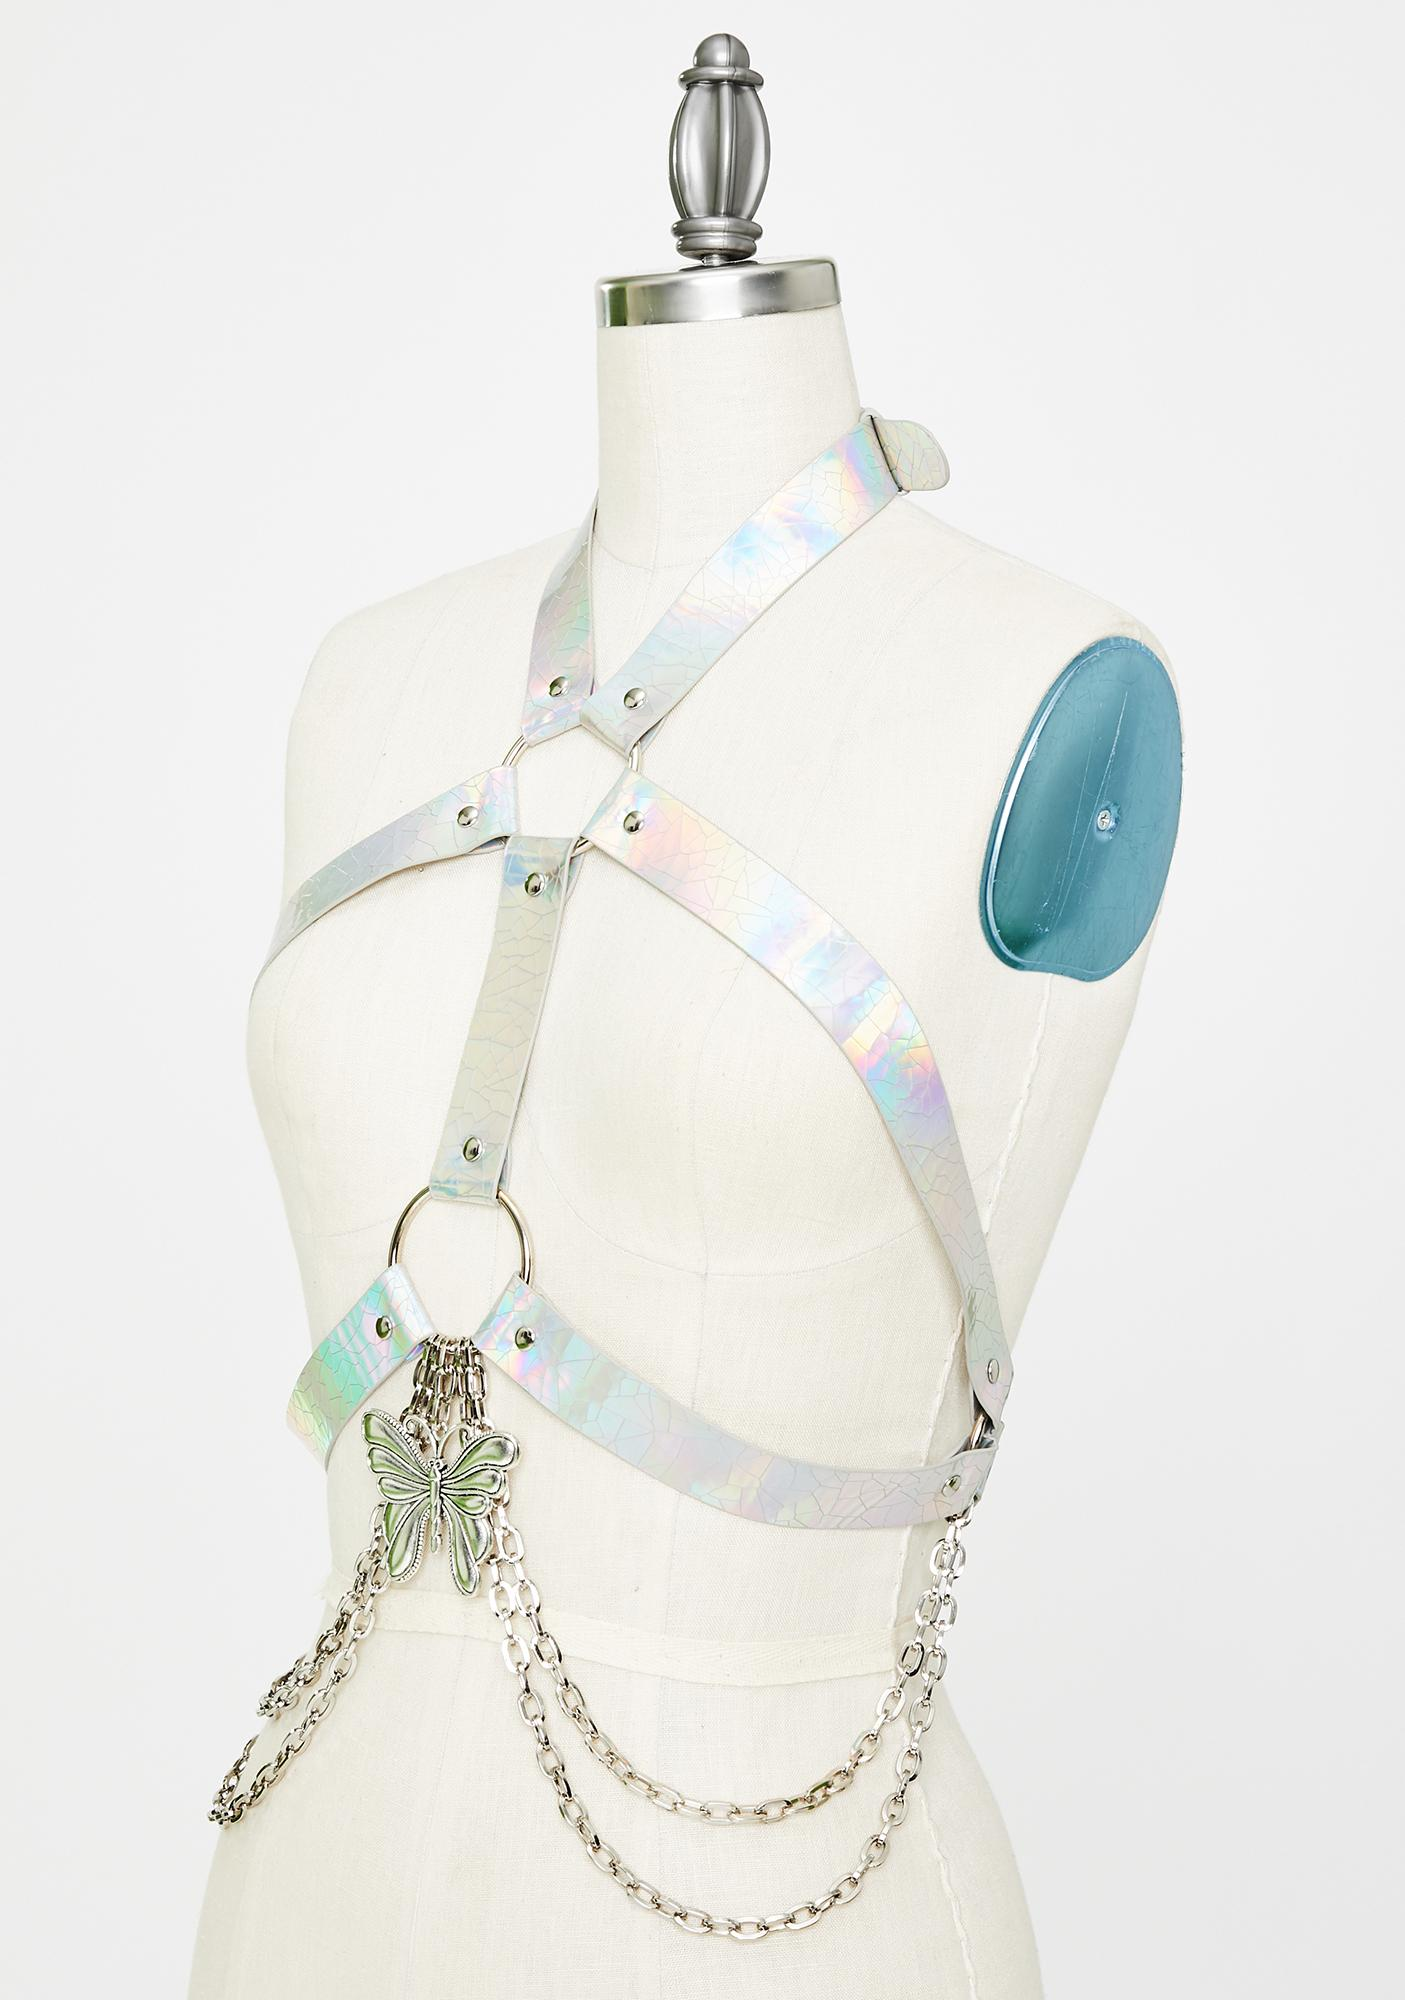 Club Exx Cosmic Muse Holographic Harness